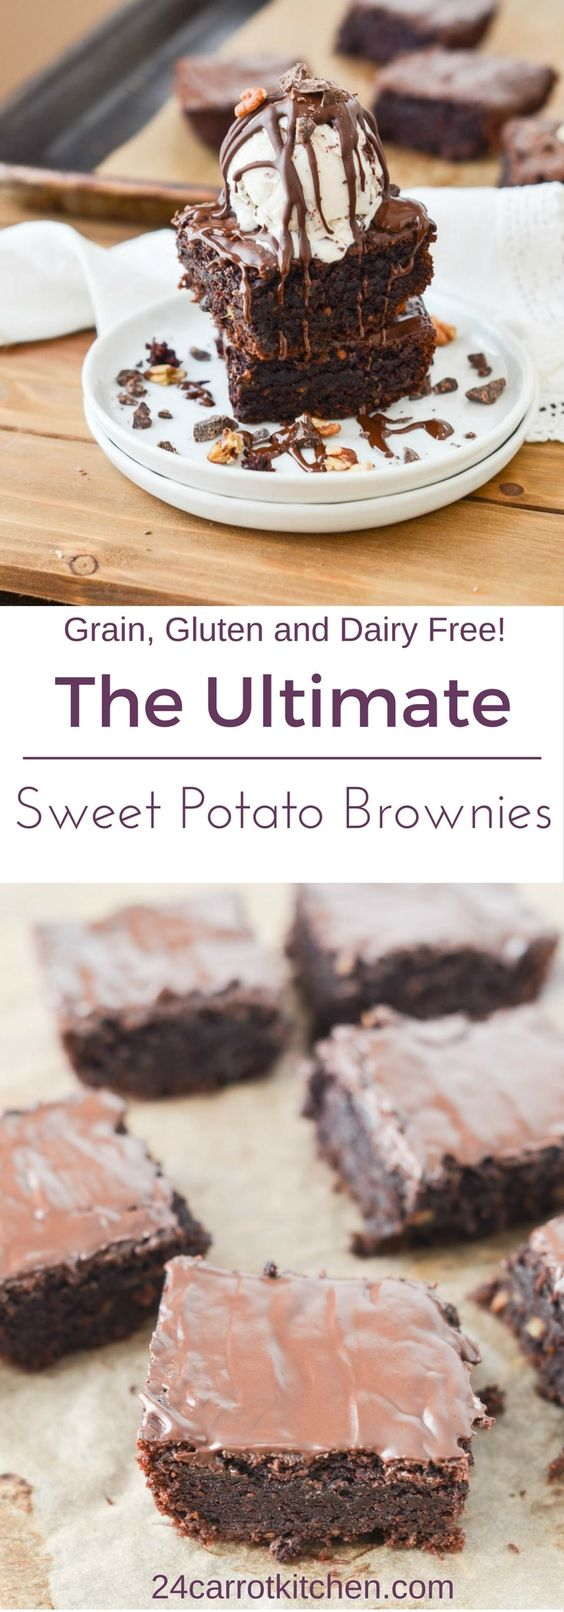 Grain-Gluten-and-Dairy-Free-Sweet-Potato-Brownies